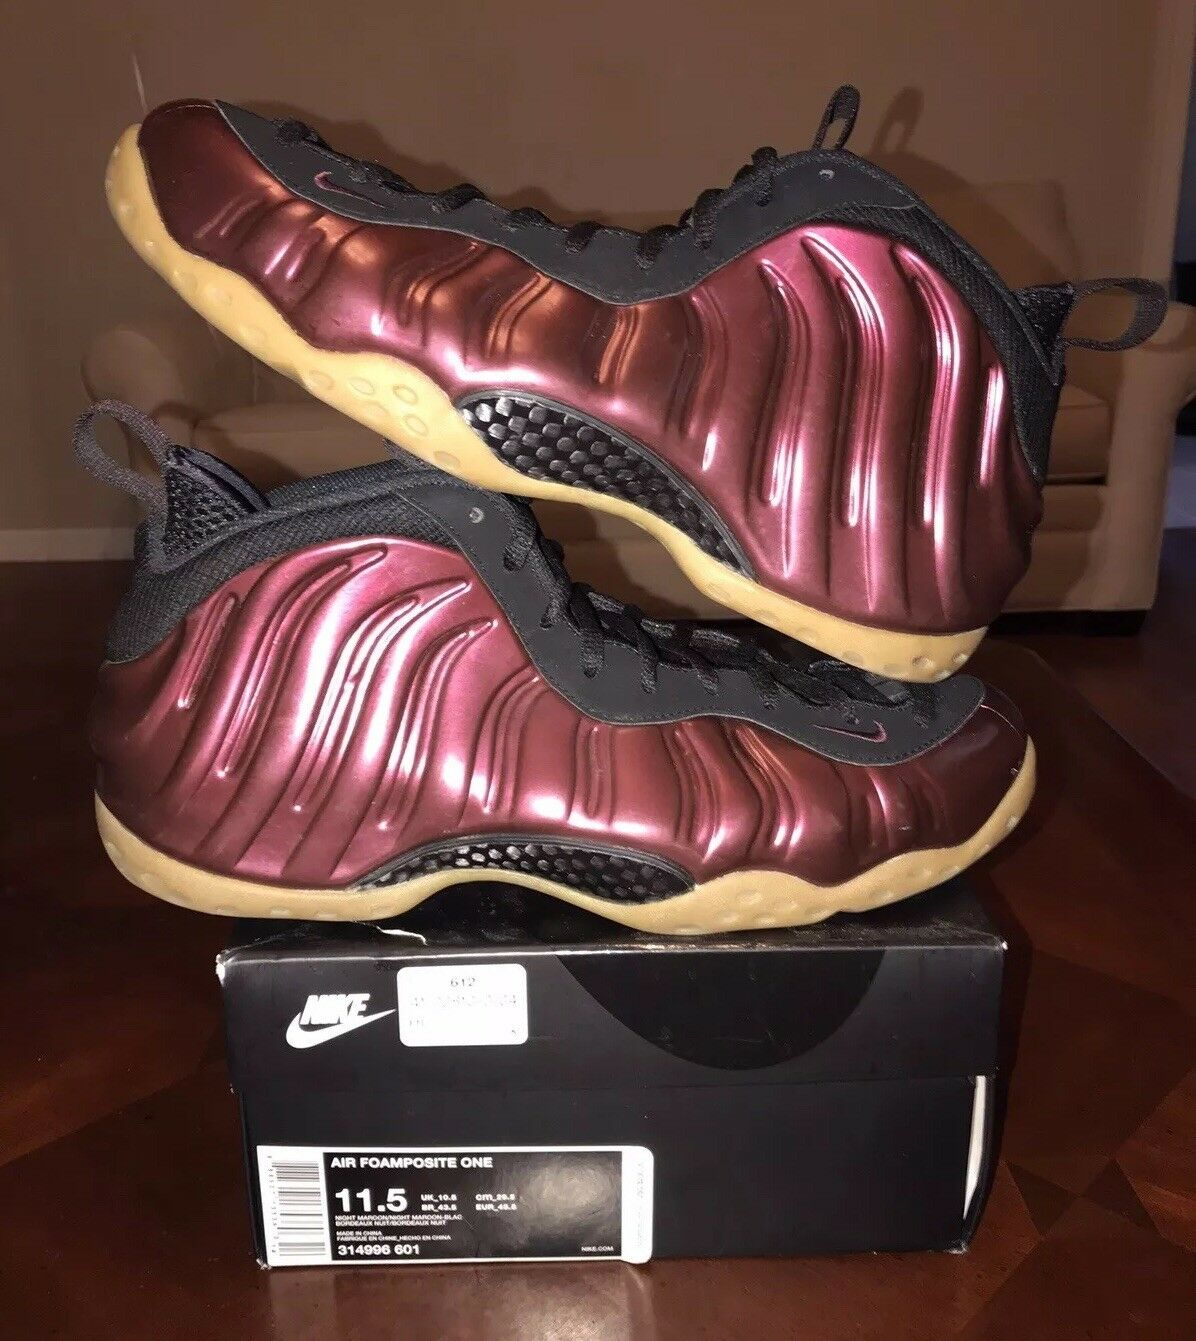 Nike Air Foamposite One Night Maroon Red Men's 11.5 Gum Black Wine Light Brown 1